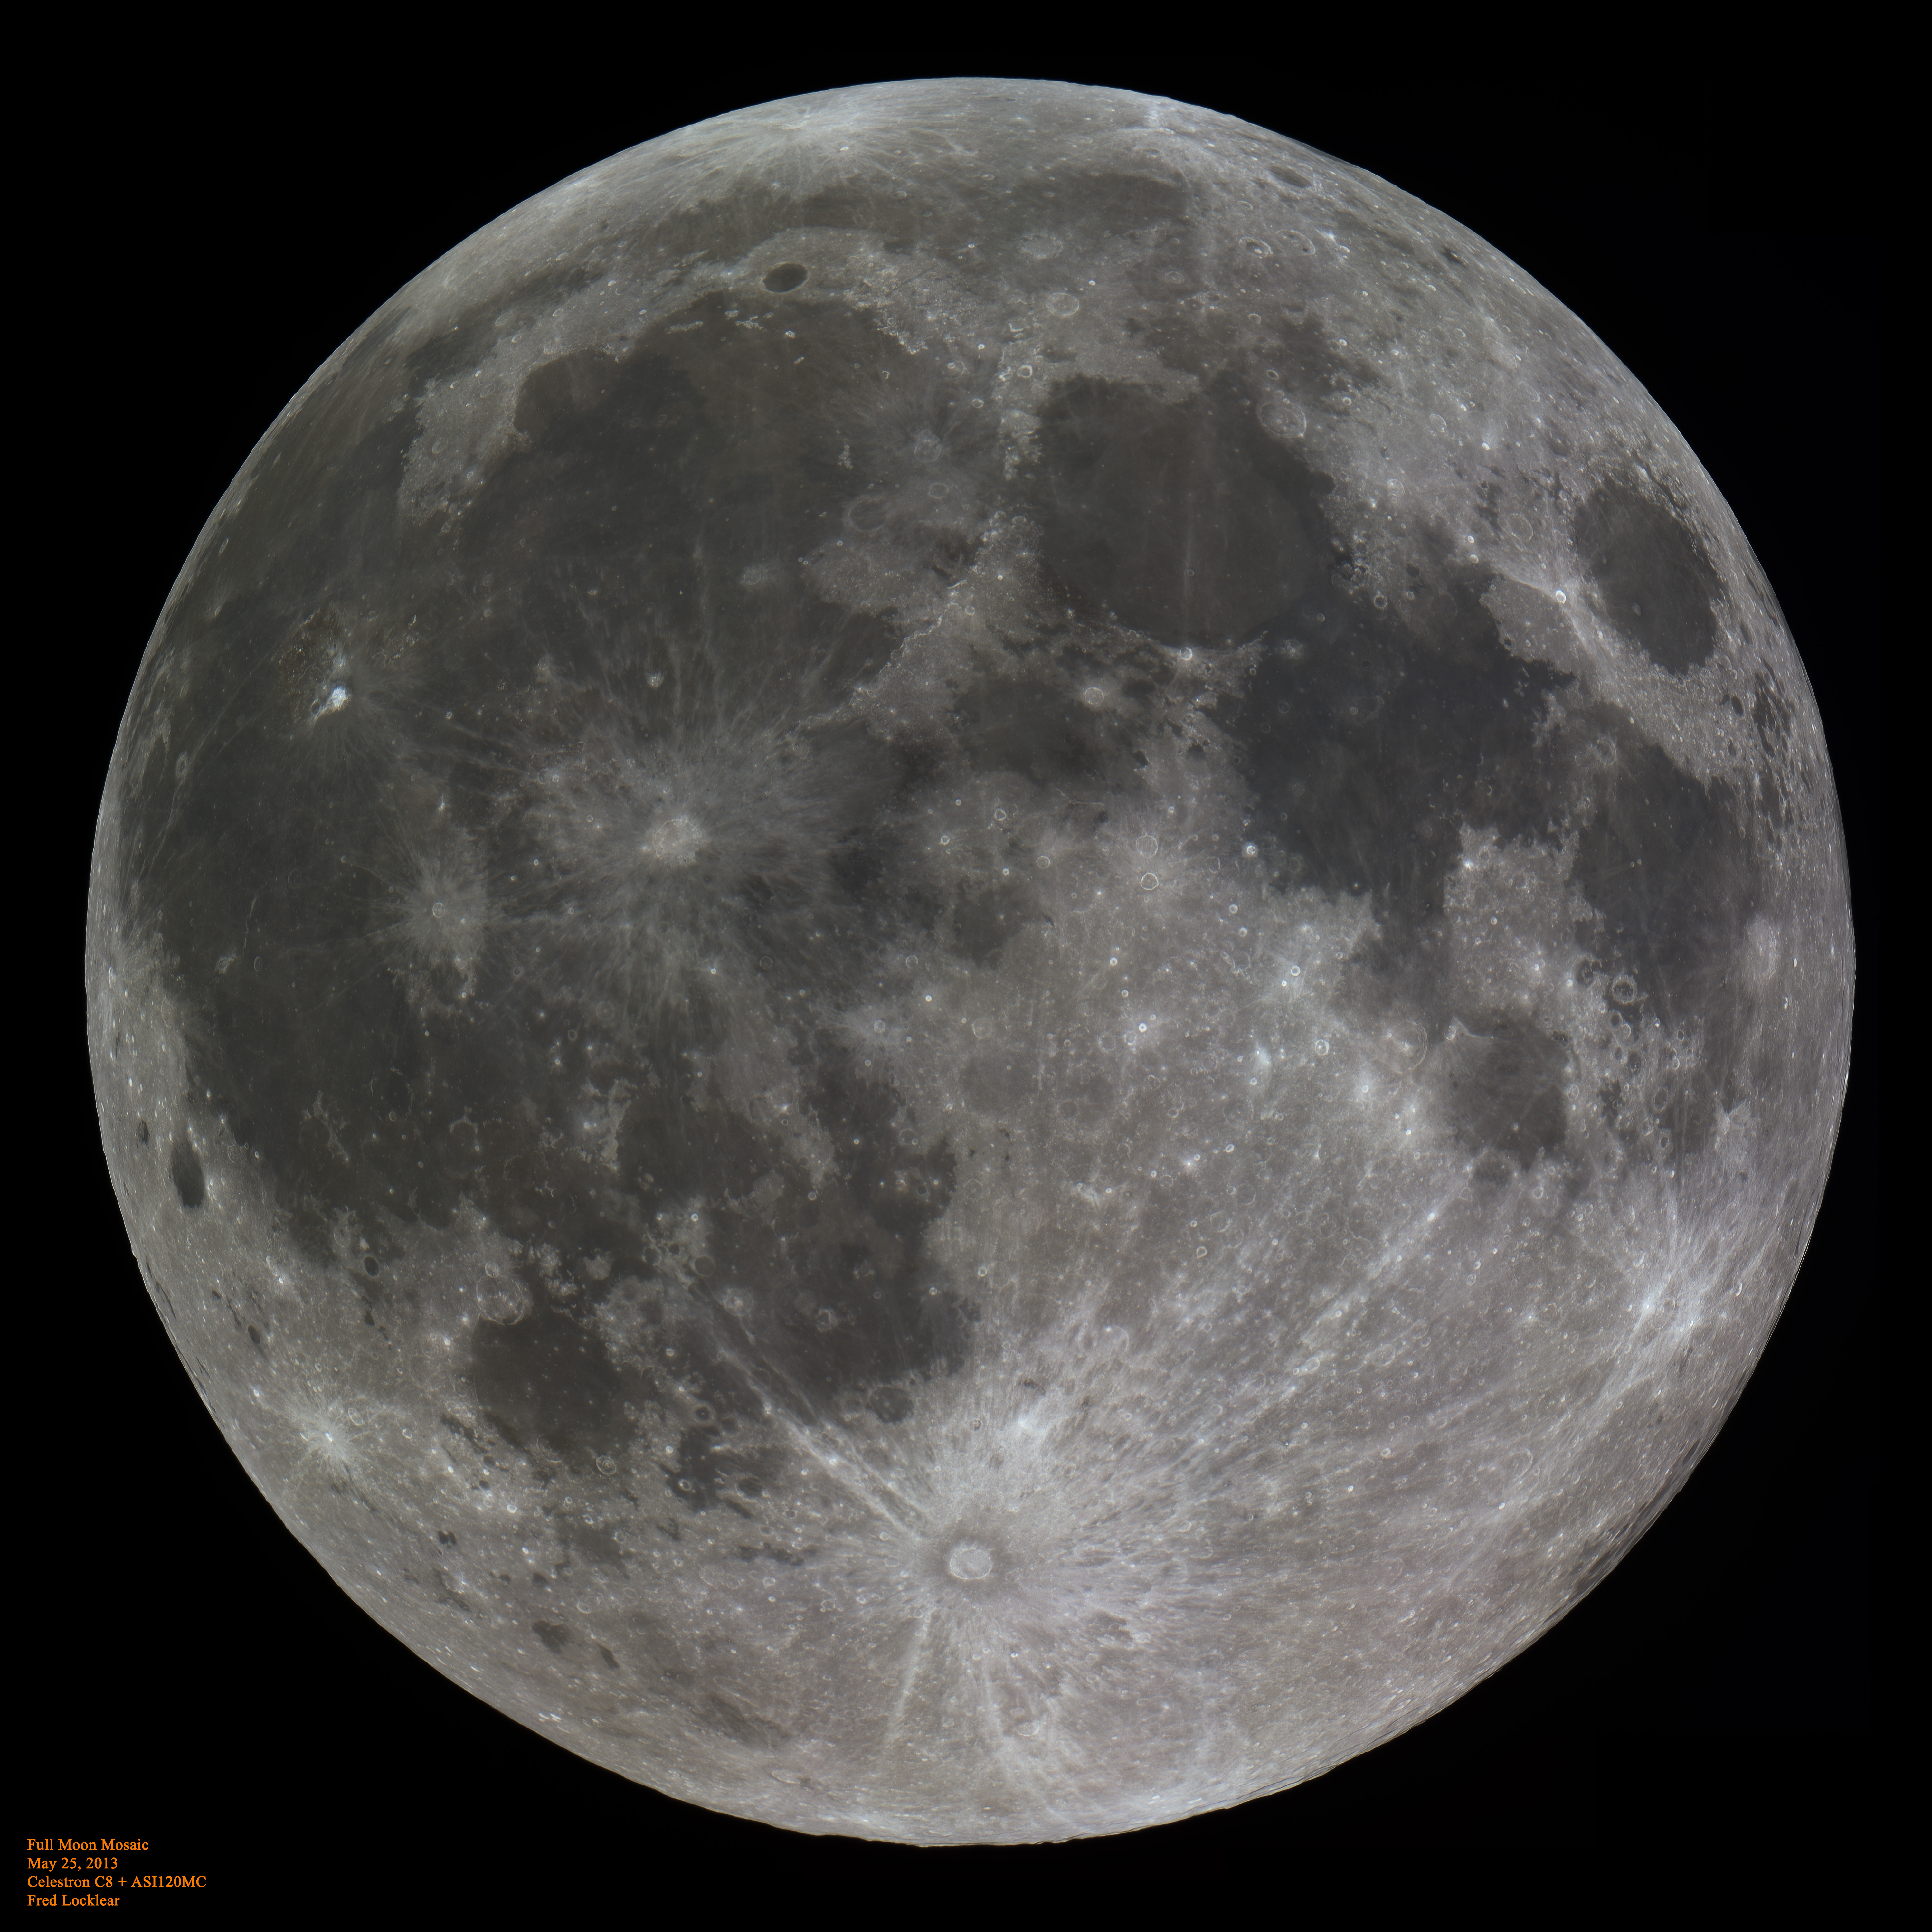 Full Moon: Amazingly detailed hi-res image of the Moon.